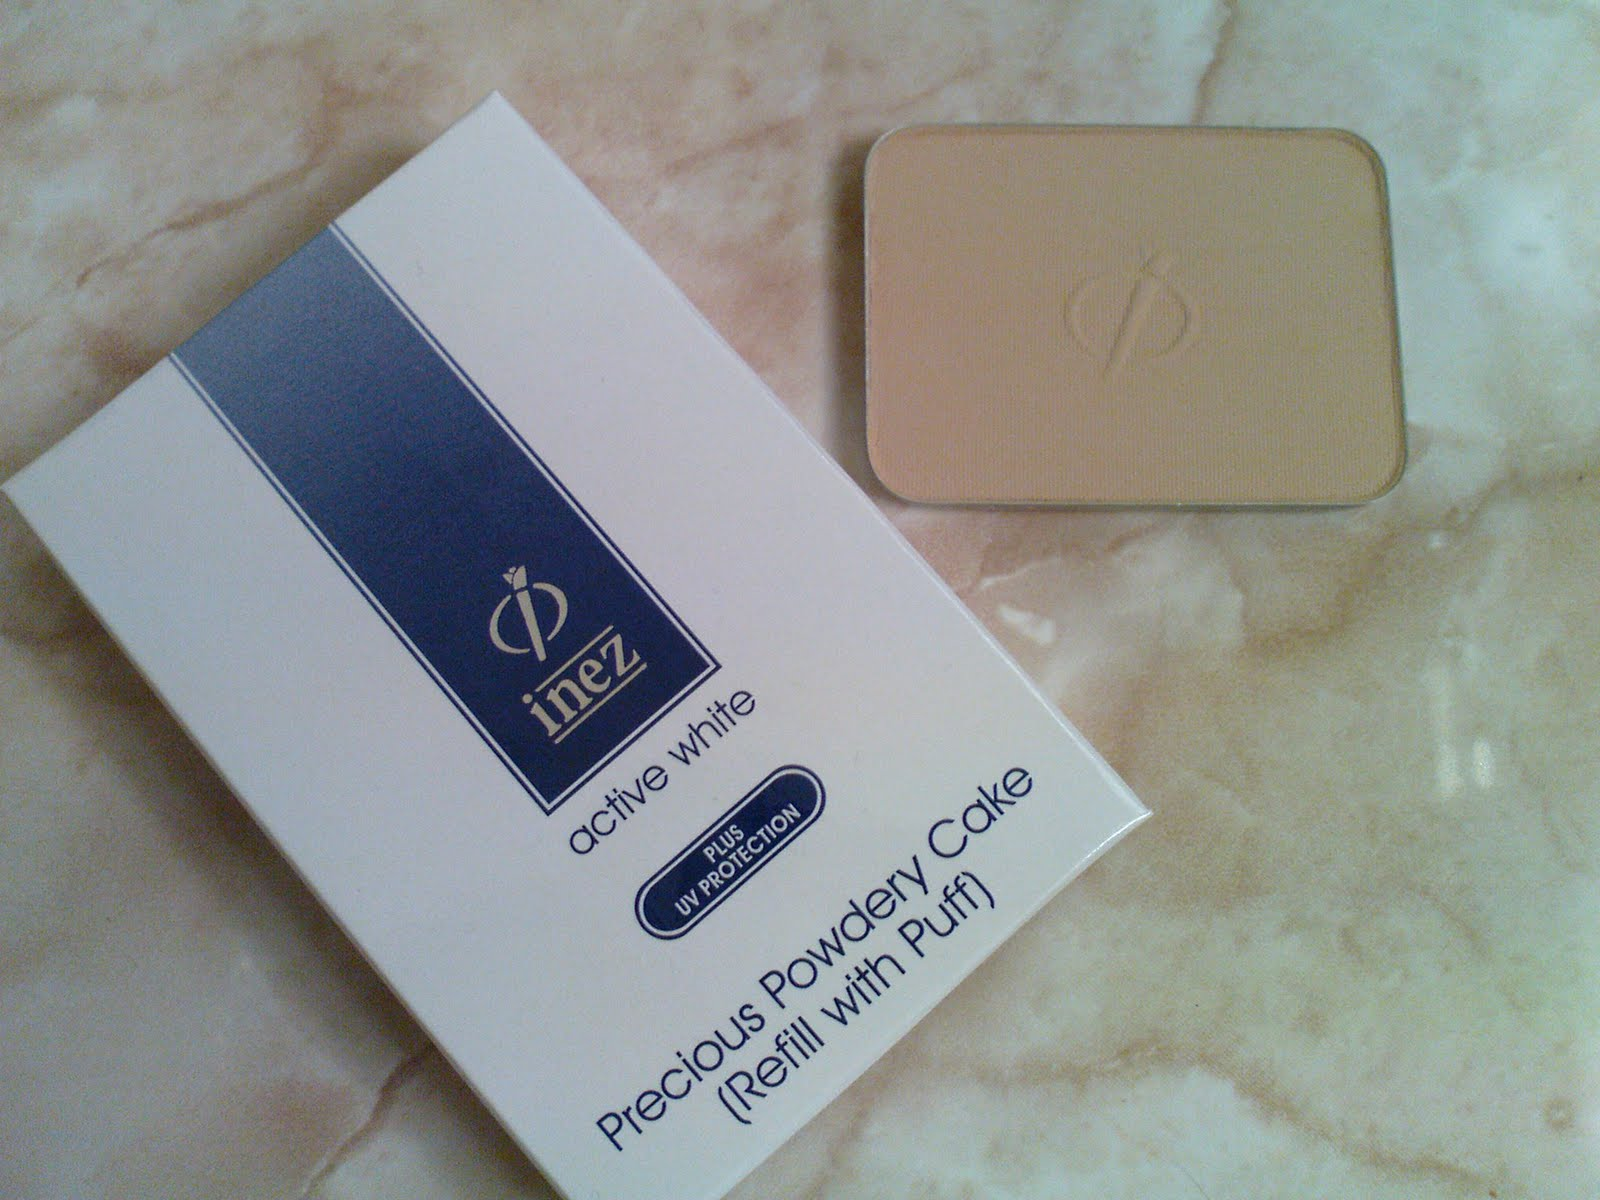 Days of My Life: [Review] My Daily Skin Care Product